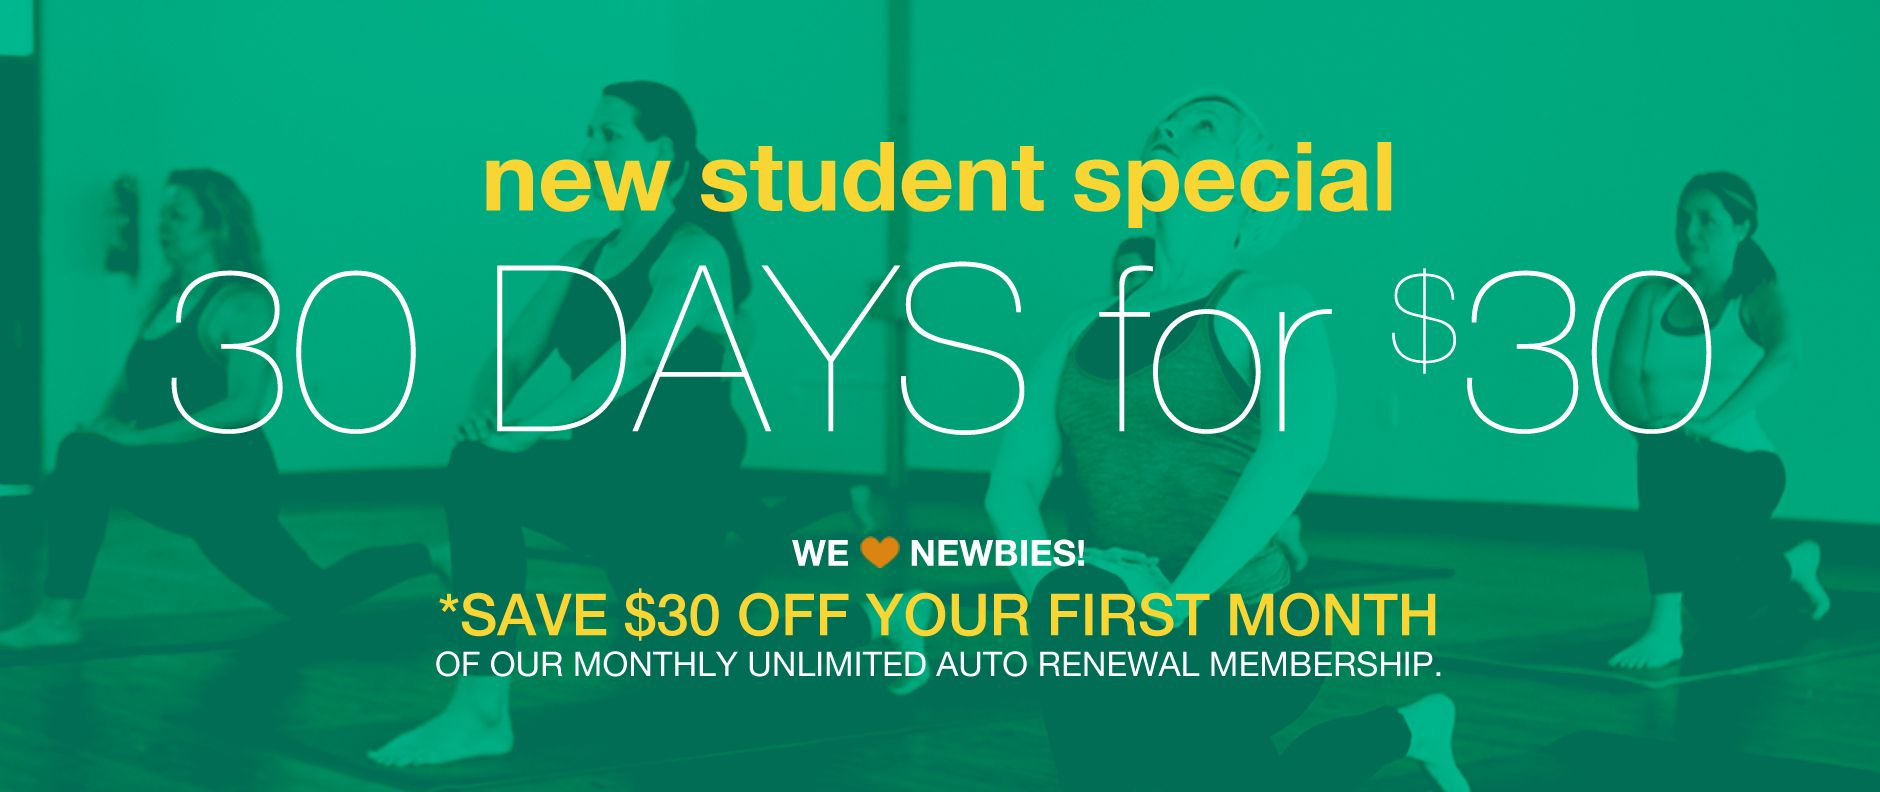 new student special form yoga Decatur Atlanta